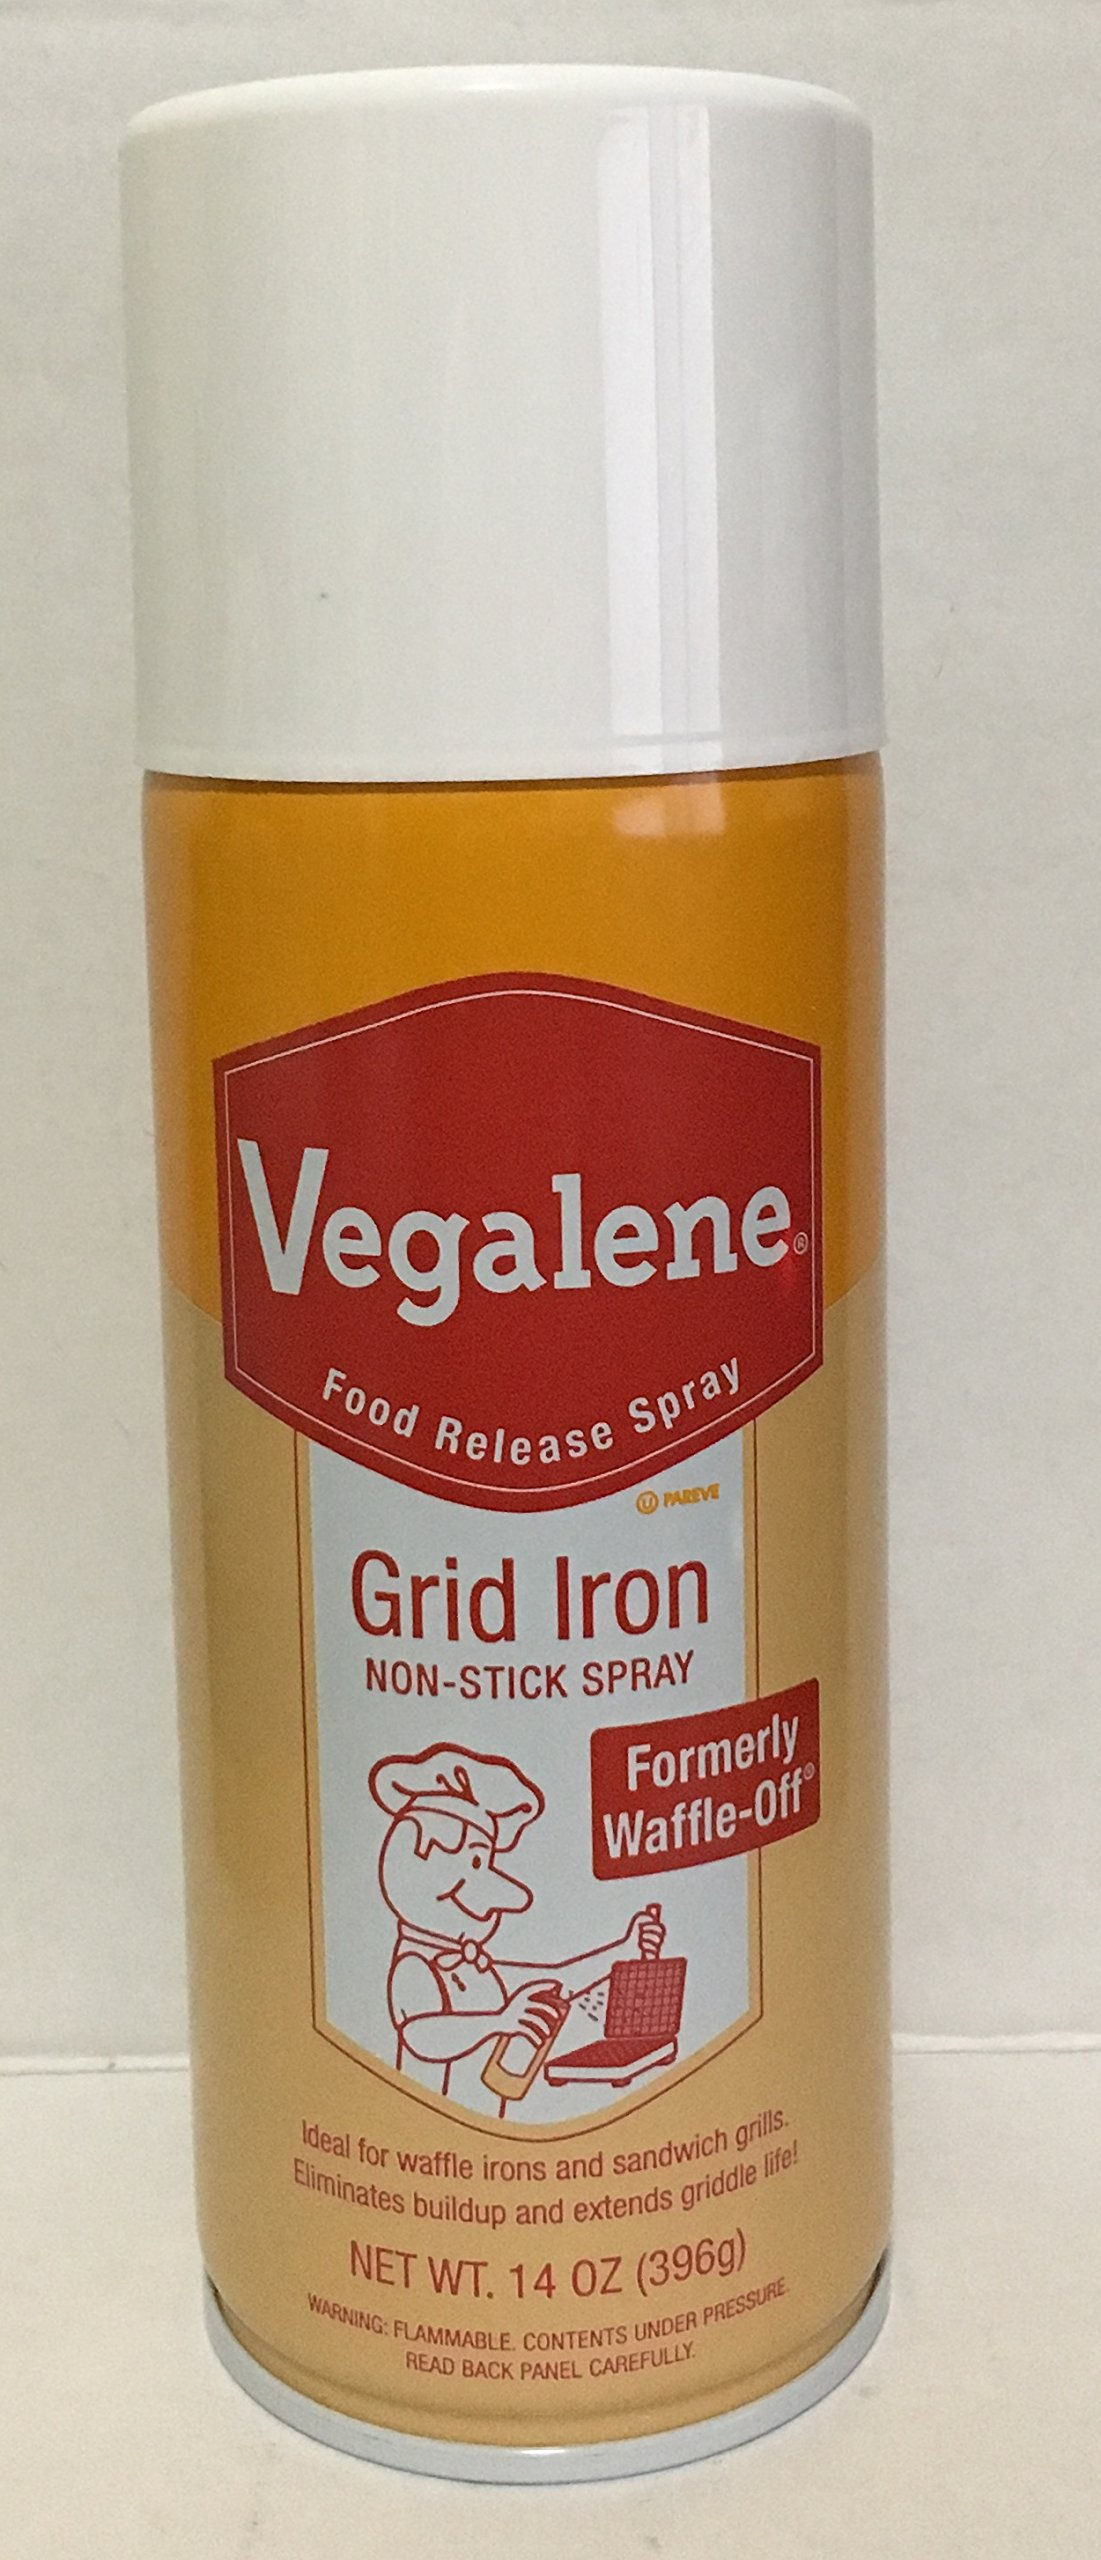 14oz Vegalene Grid Iron Food Release Cooking Spray, Formerly Waffle-Off (Pack of 1)